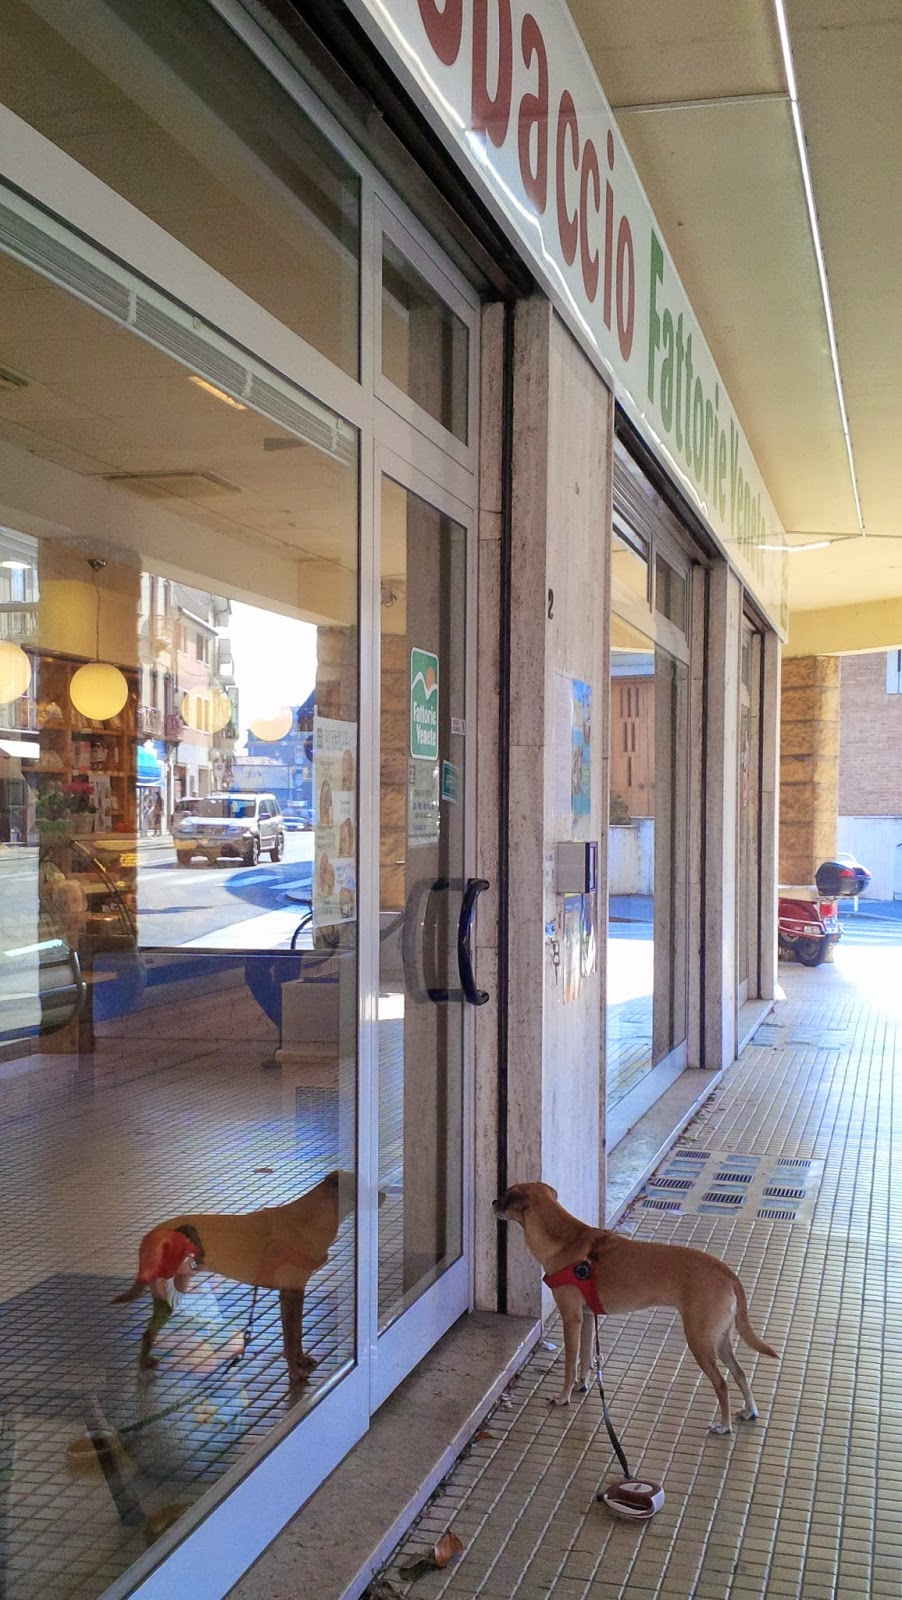 A dog waits patiently for his master in front of a local deli